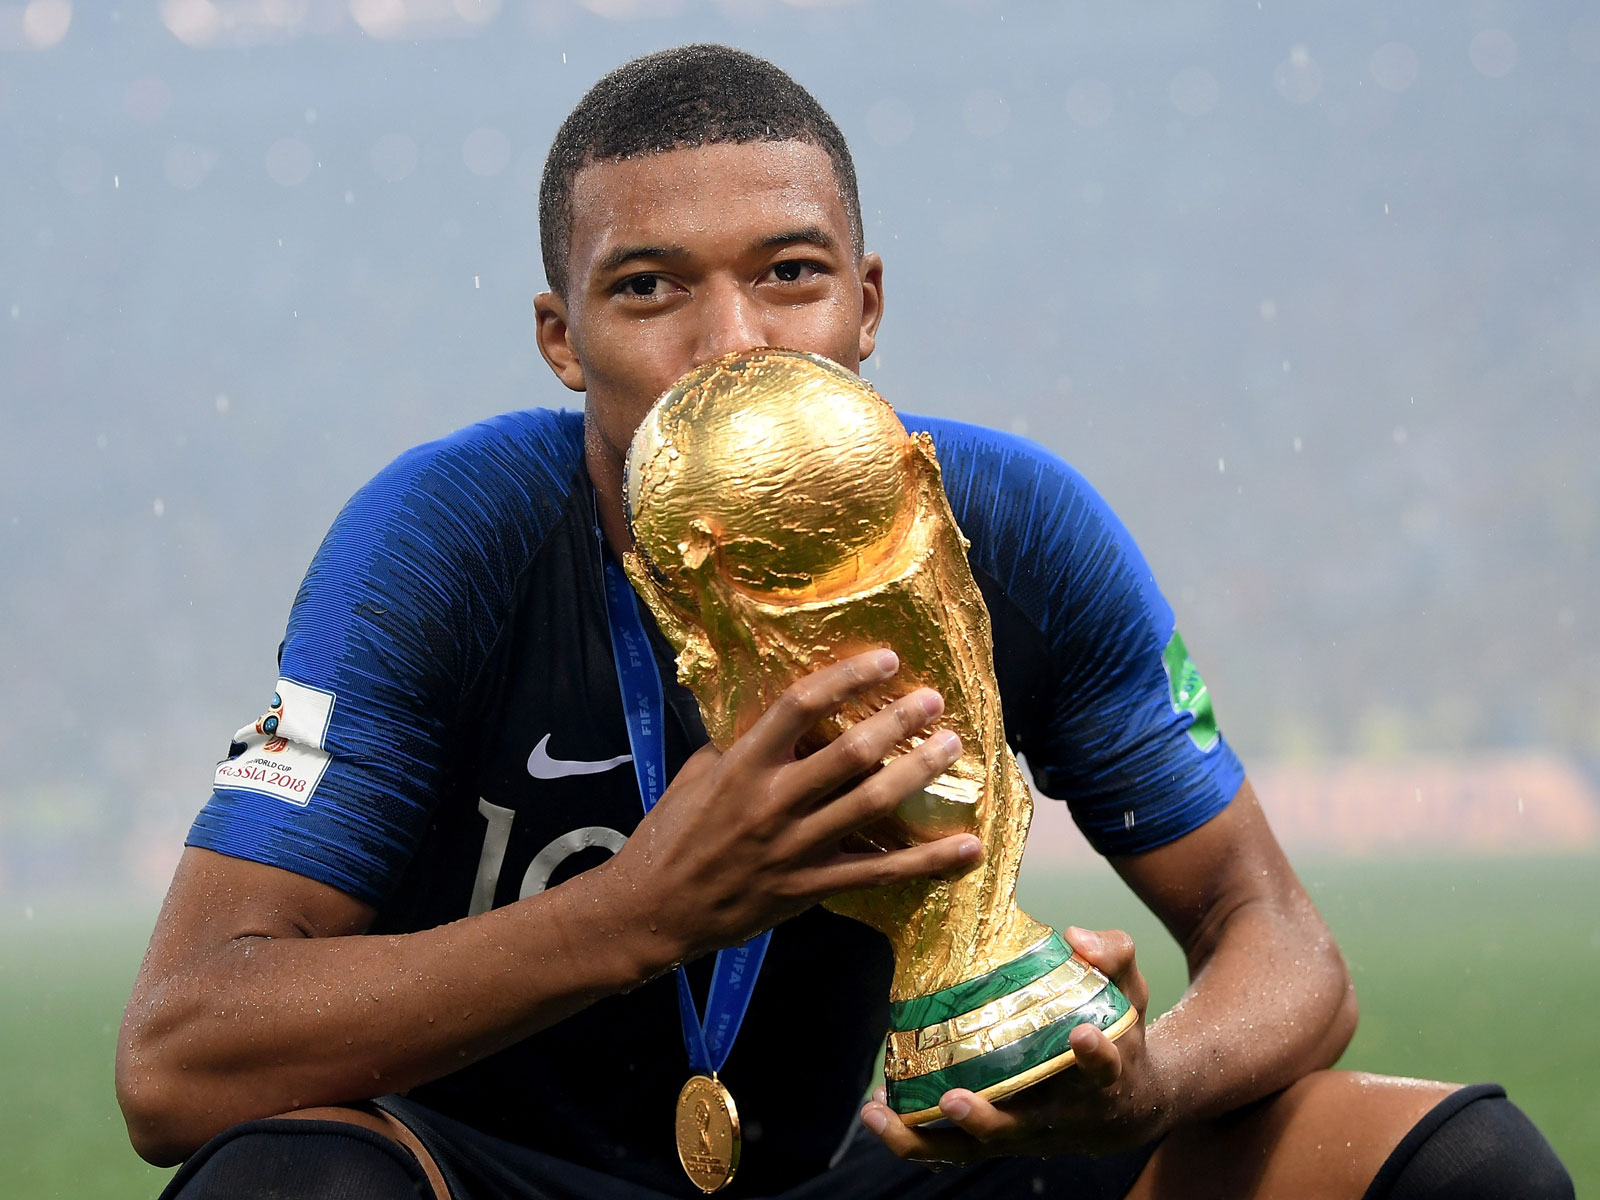 Kylian Mbappe starred for France at the World Cup